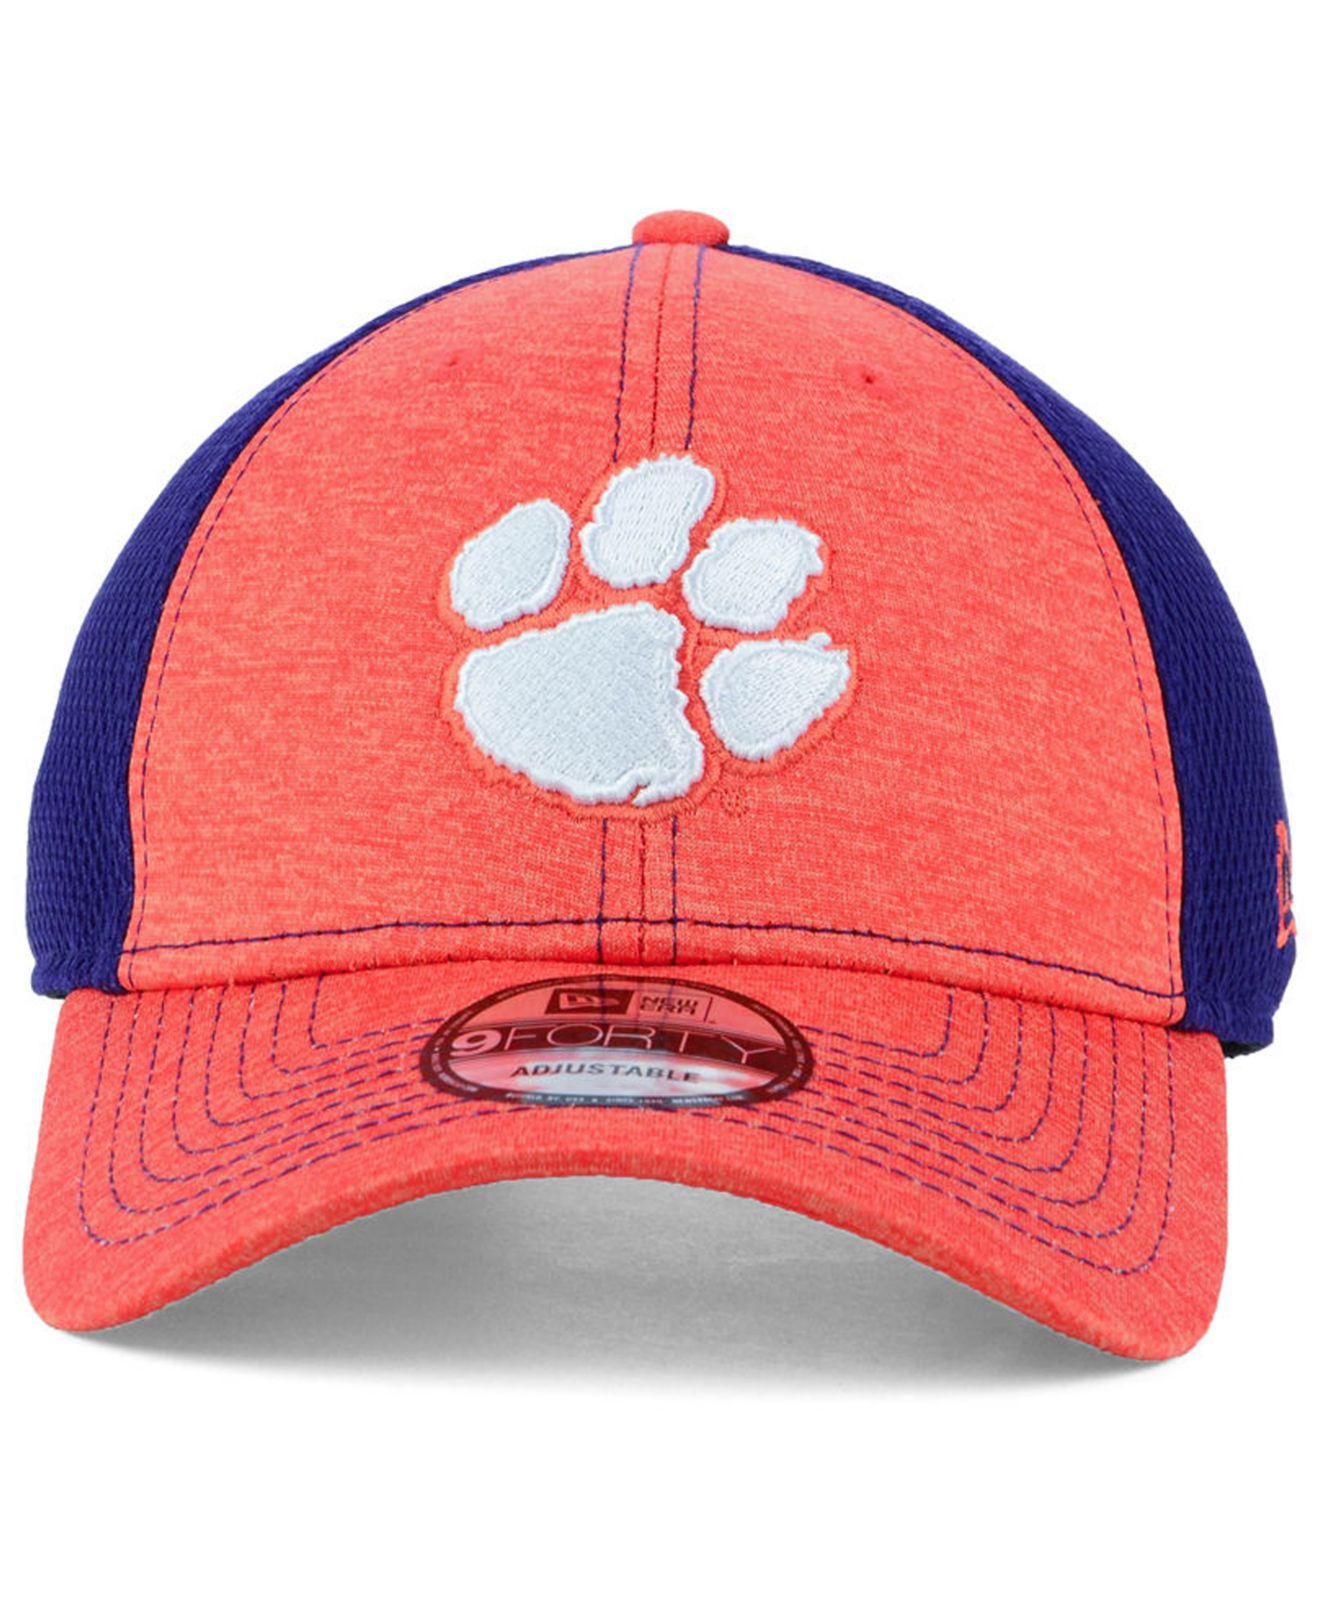 new arrival c570a d851e ... promo code for lyst ktz clemson tigers shadow turn 9forty cap for men  cec2b 82c4a